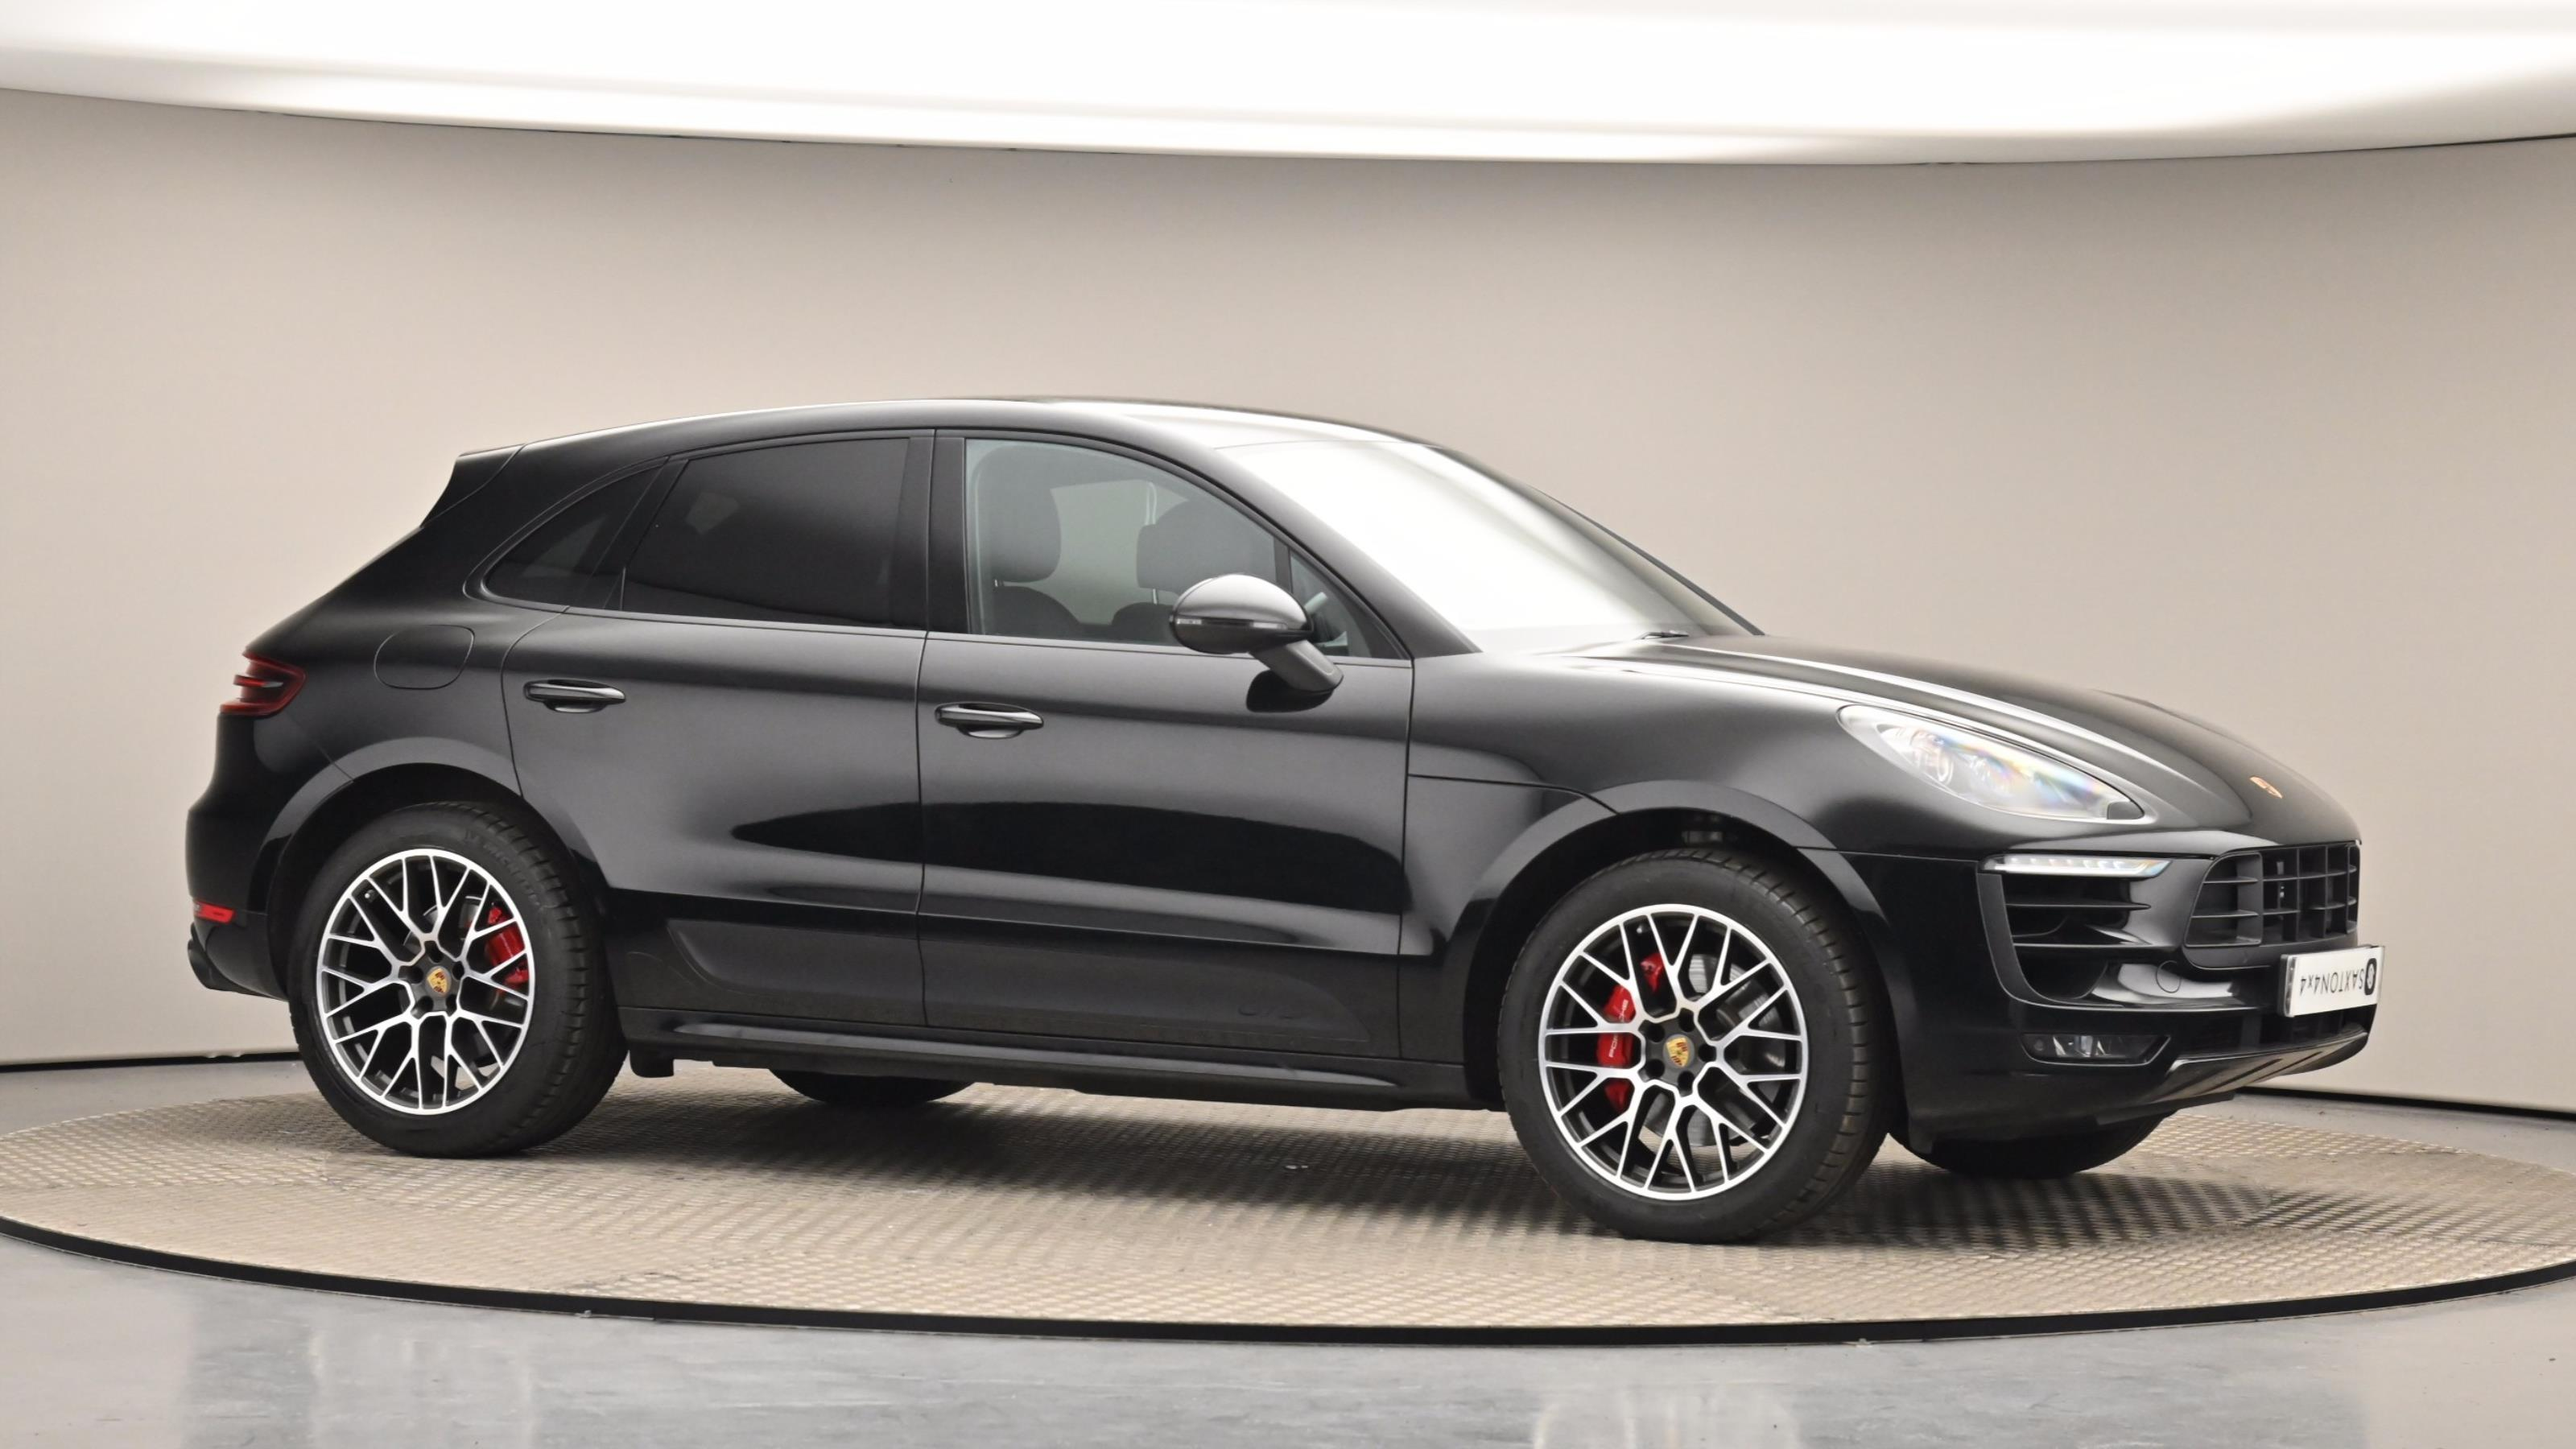 Used 17 Porsche MACAN GTS 5dr PDK BLACK at Saxton4x4